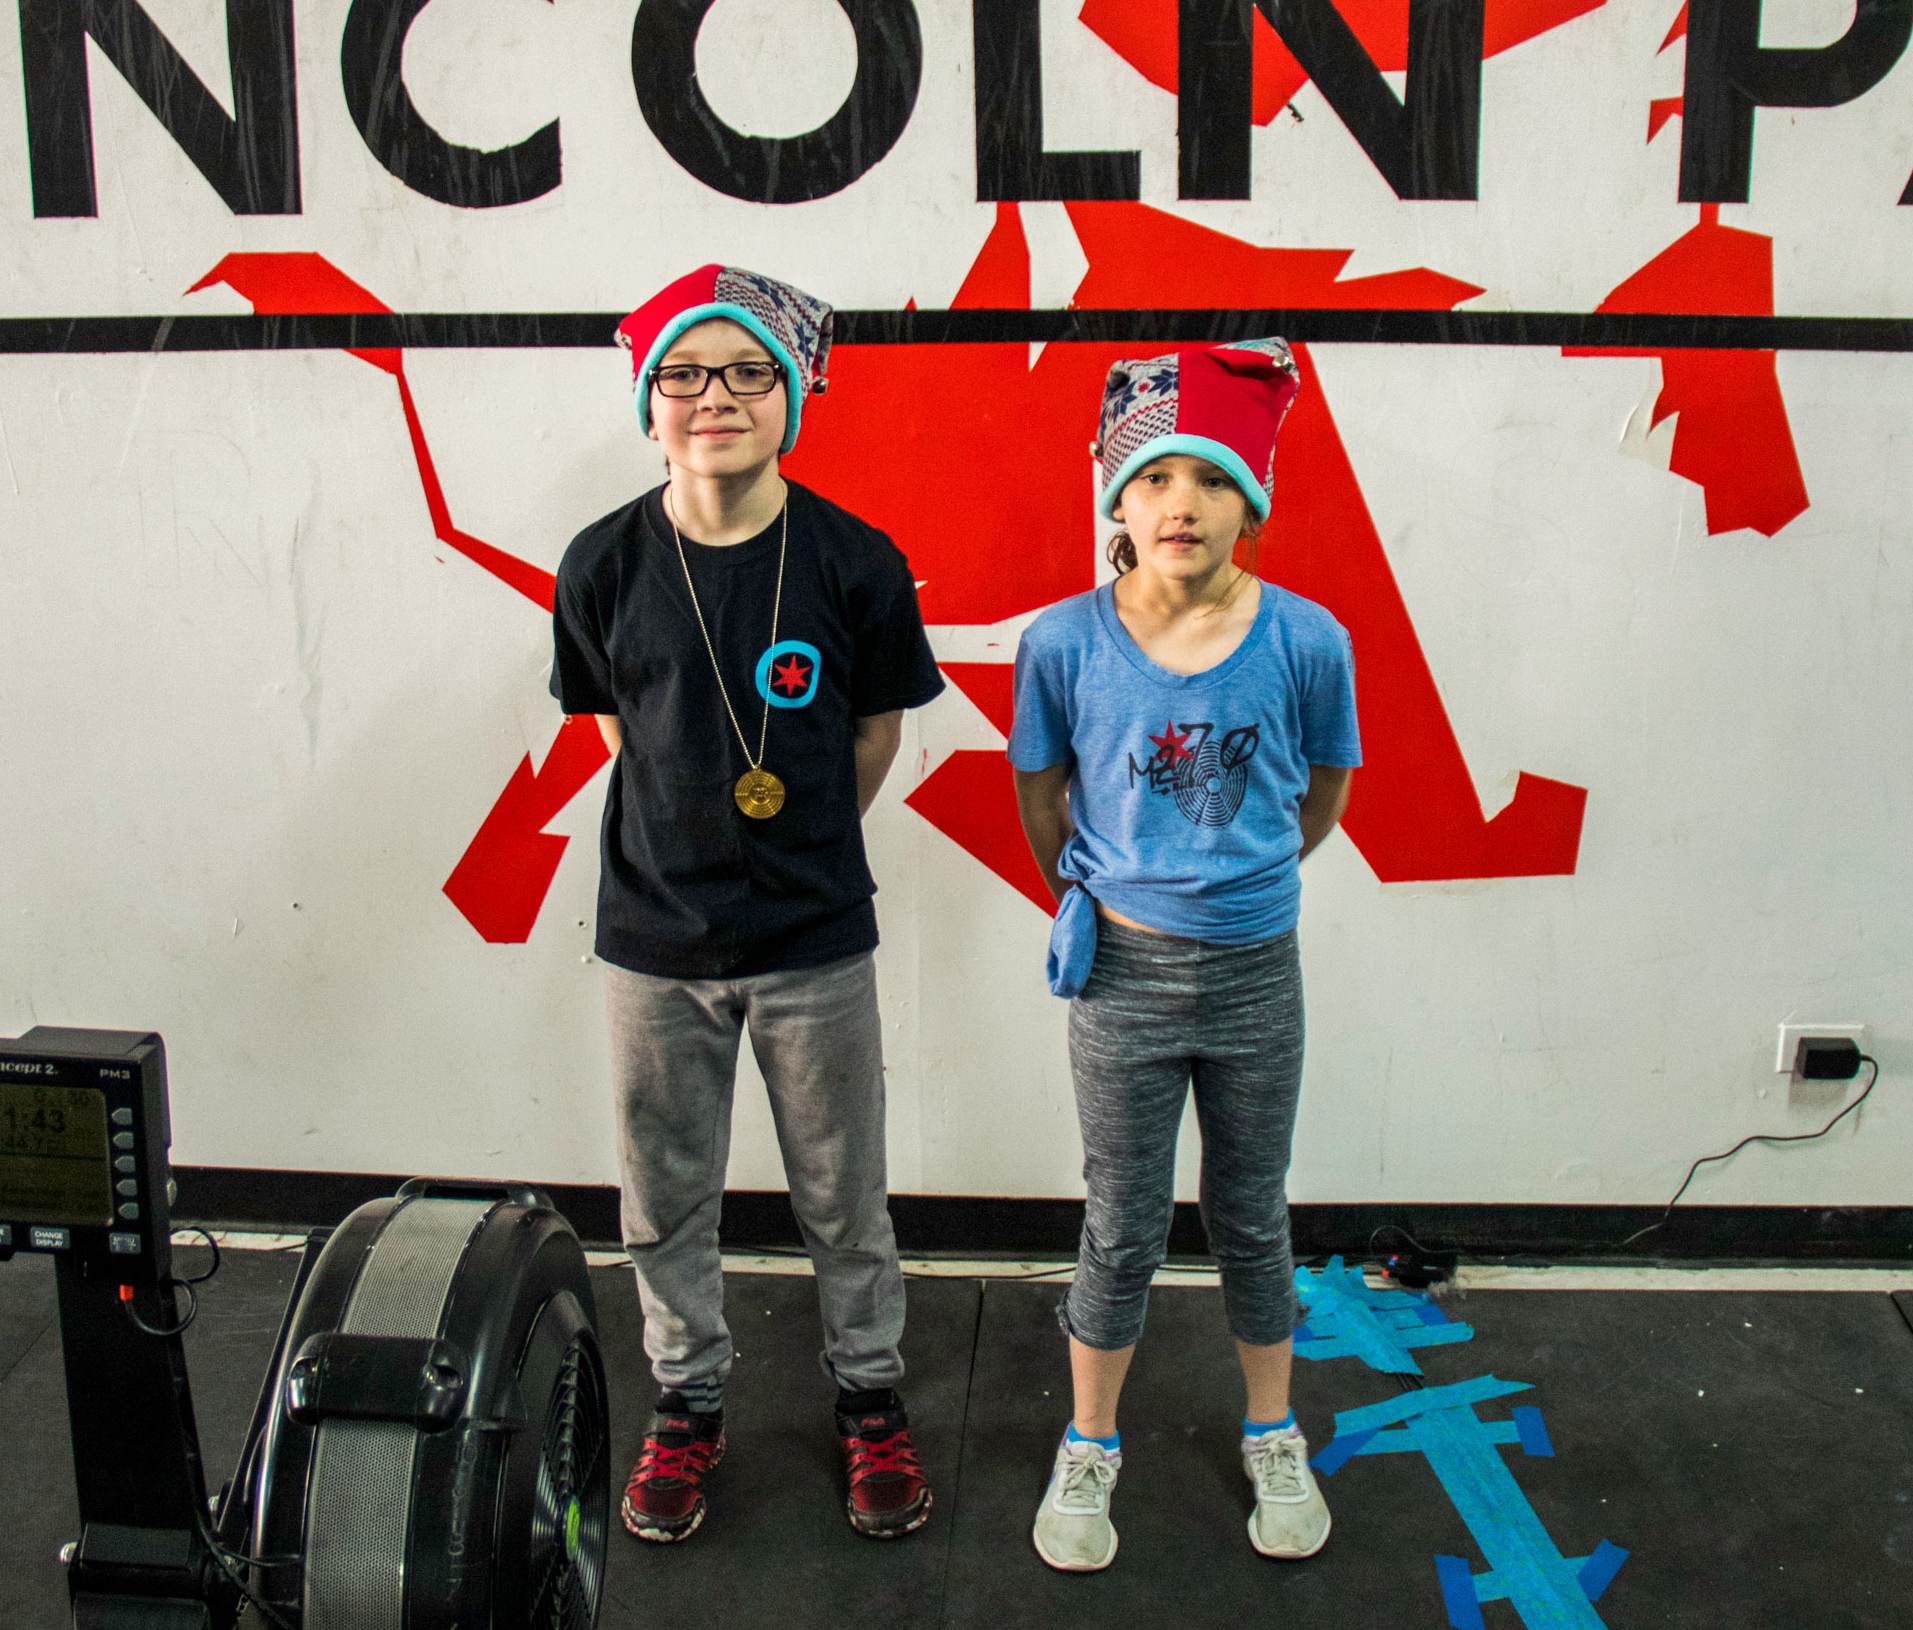 Aiden-Claire-medals-hats.jpg